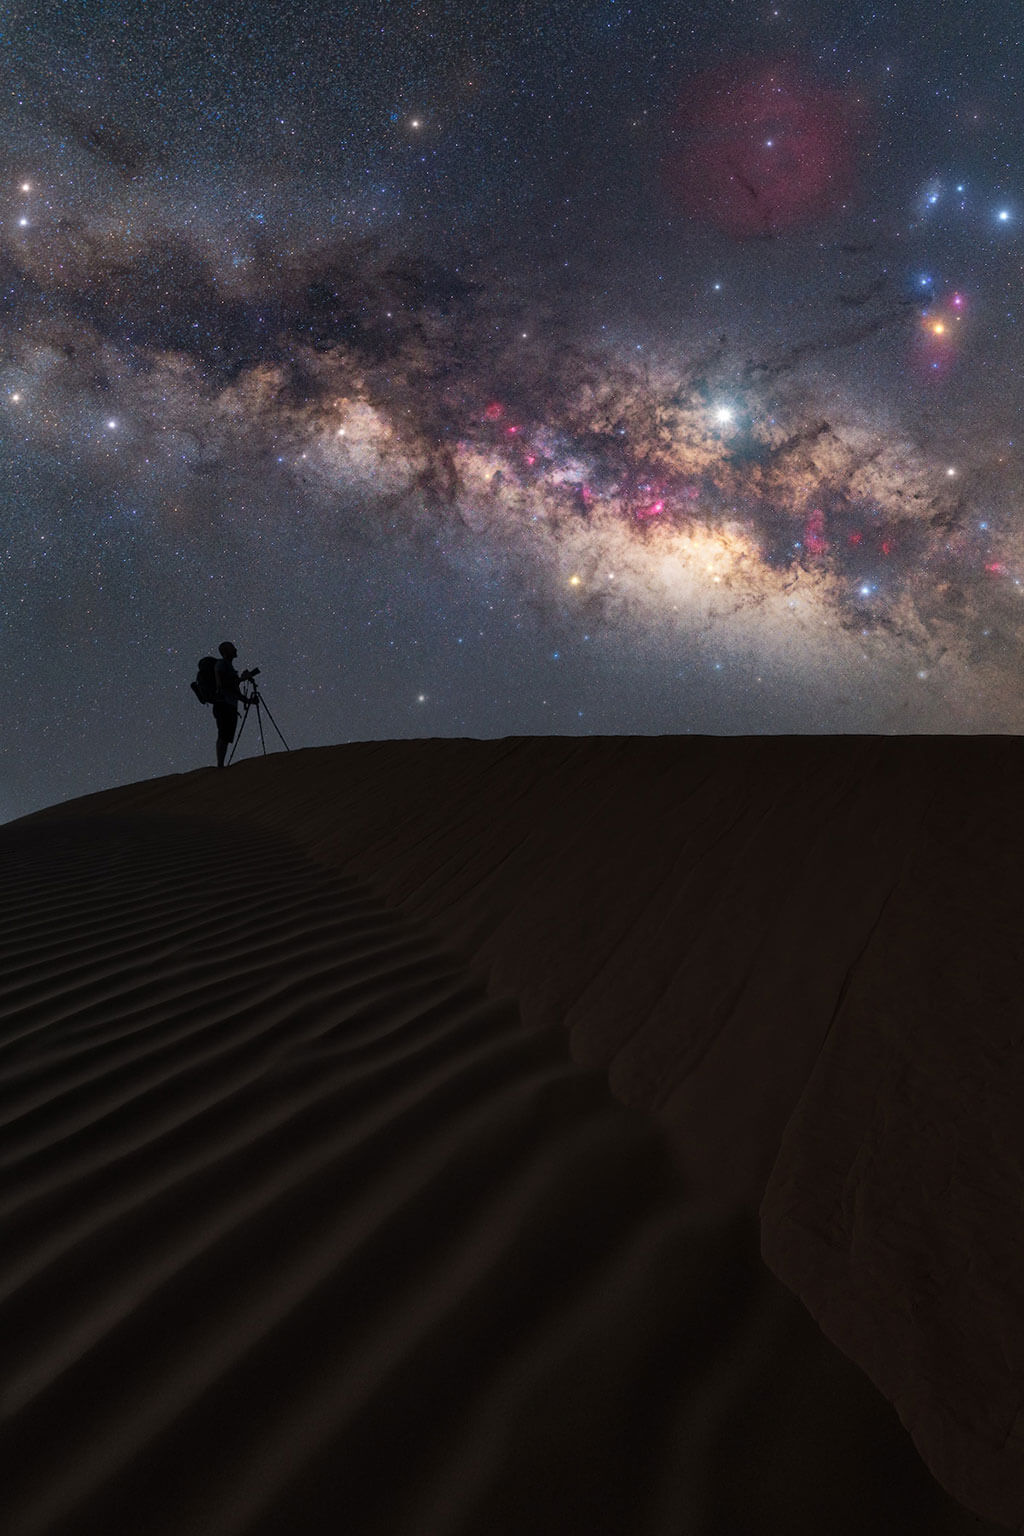 Astrophotography from the Sahara